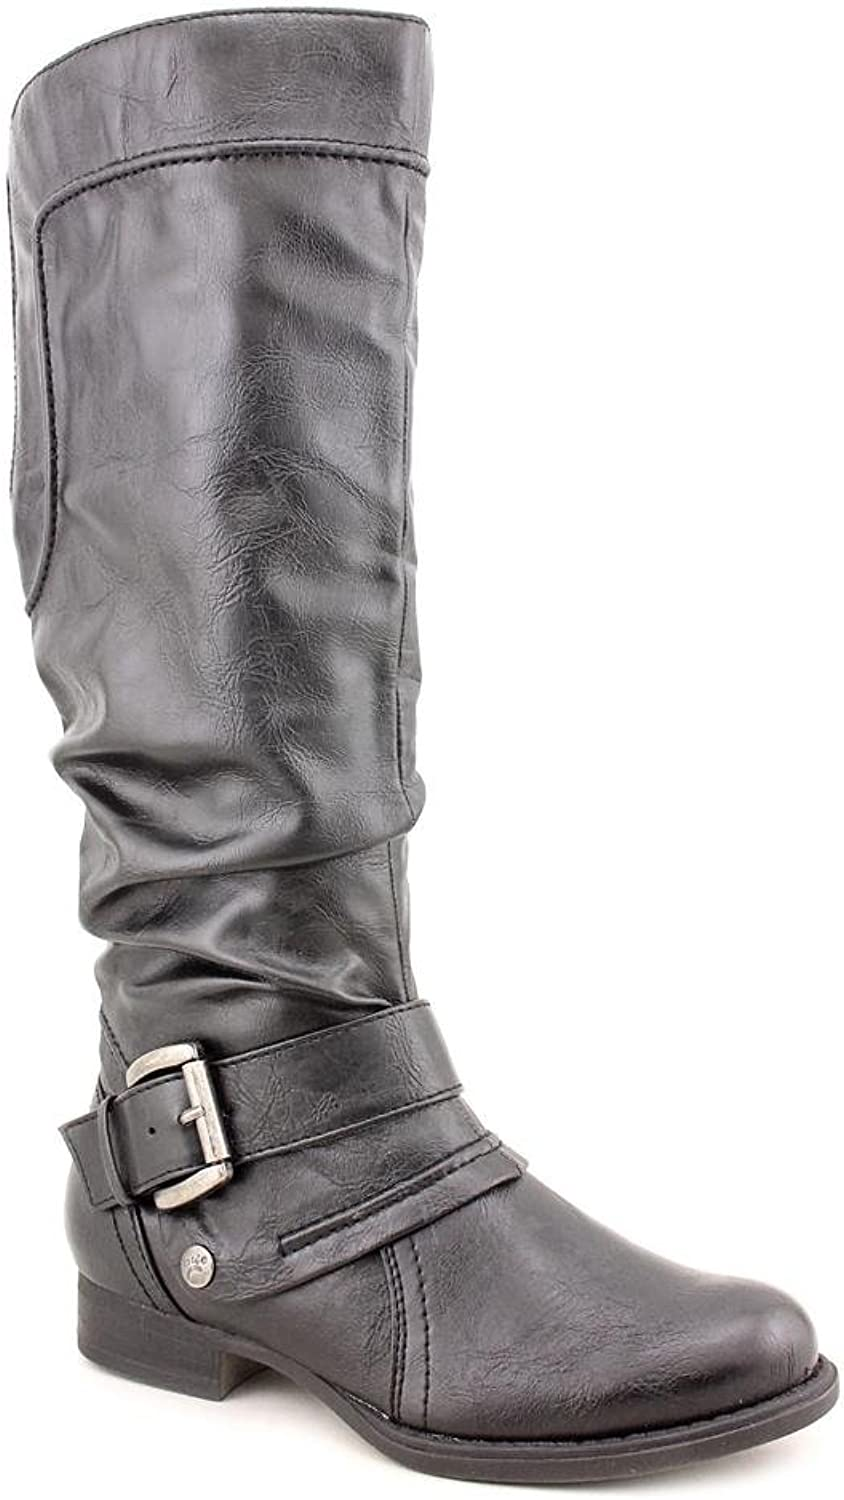 Baretraps Julee Womens Faux Leather Fashion Knee-High Boots